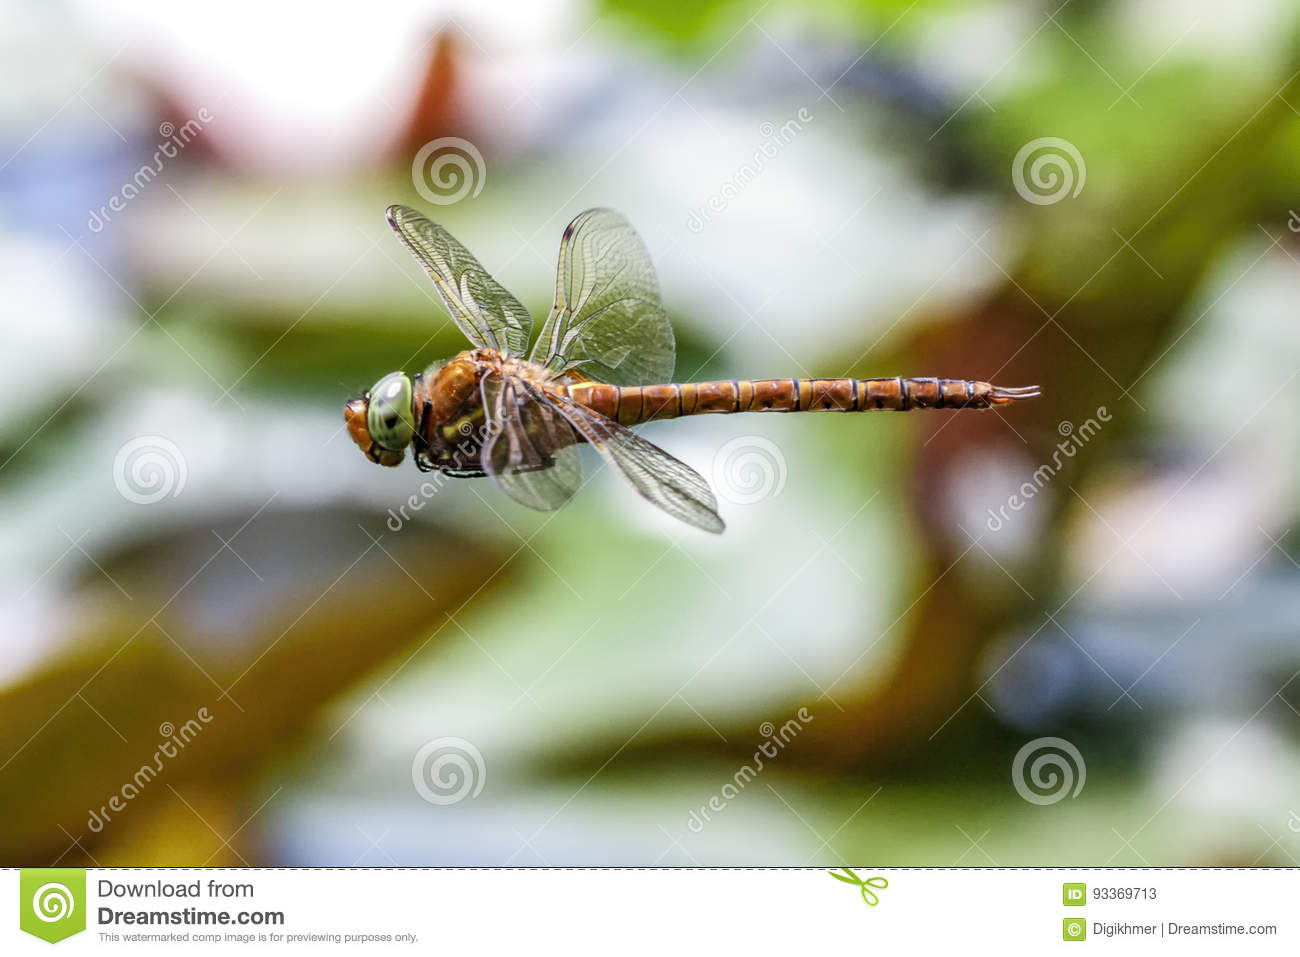 Dragonfly male